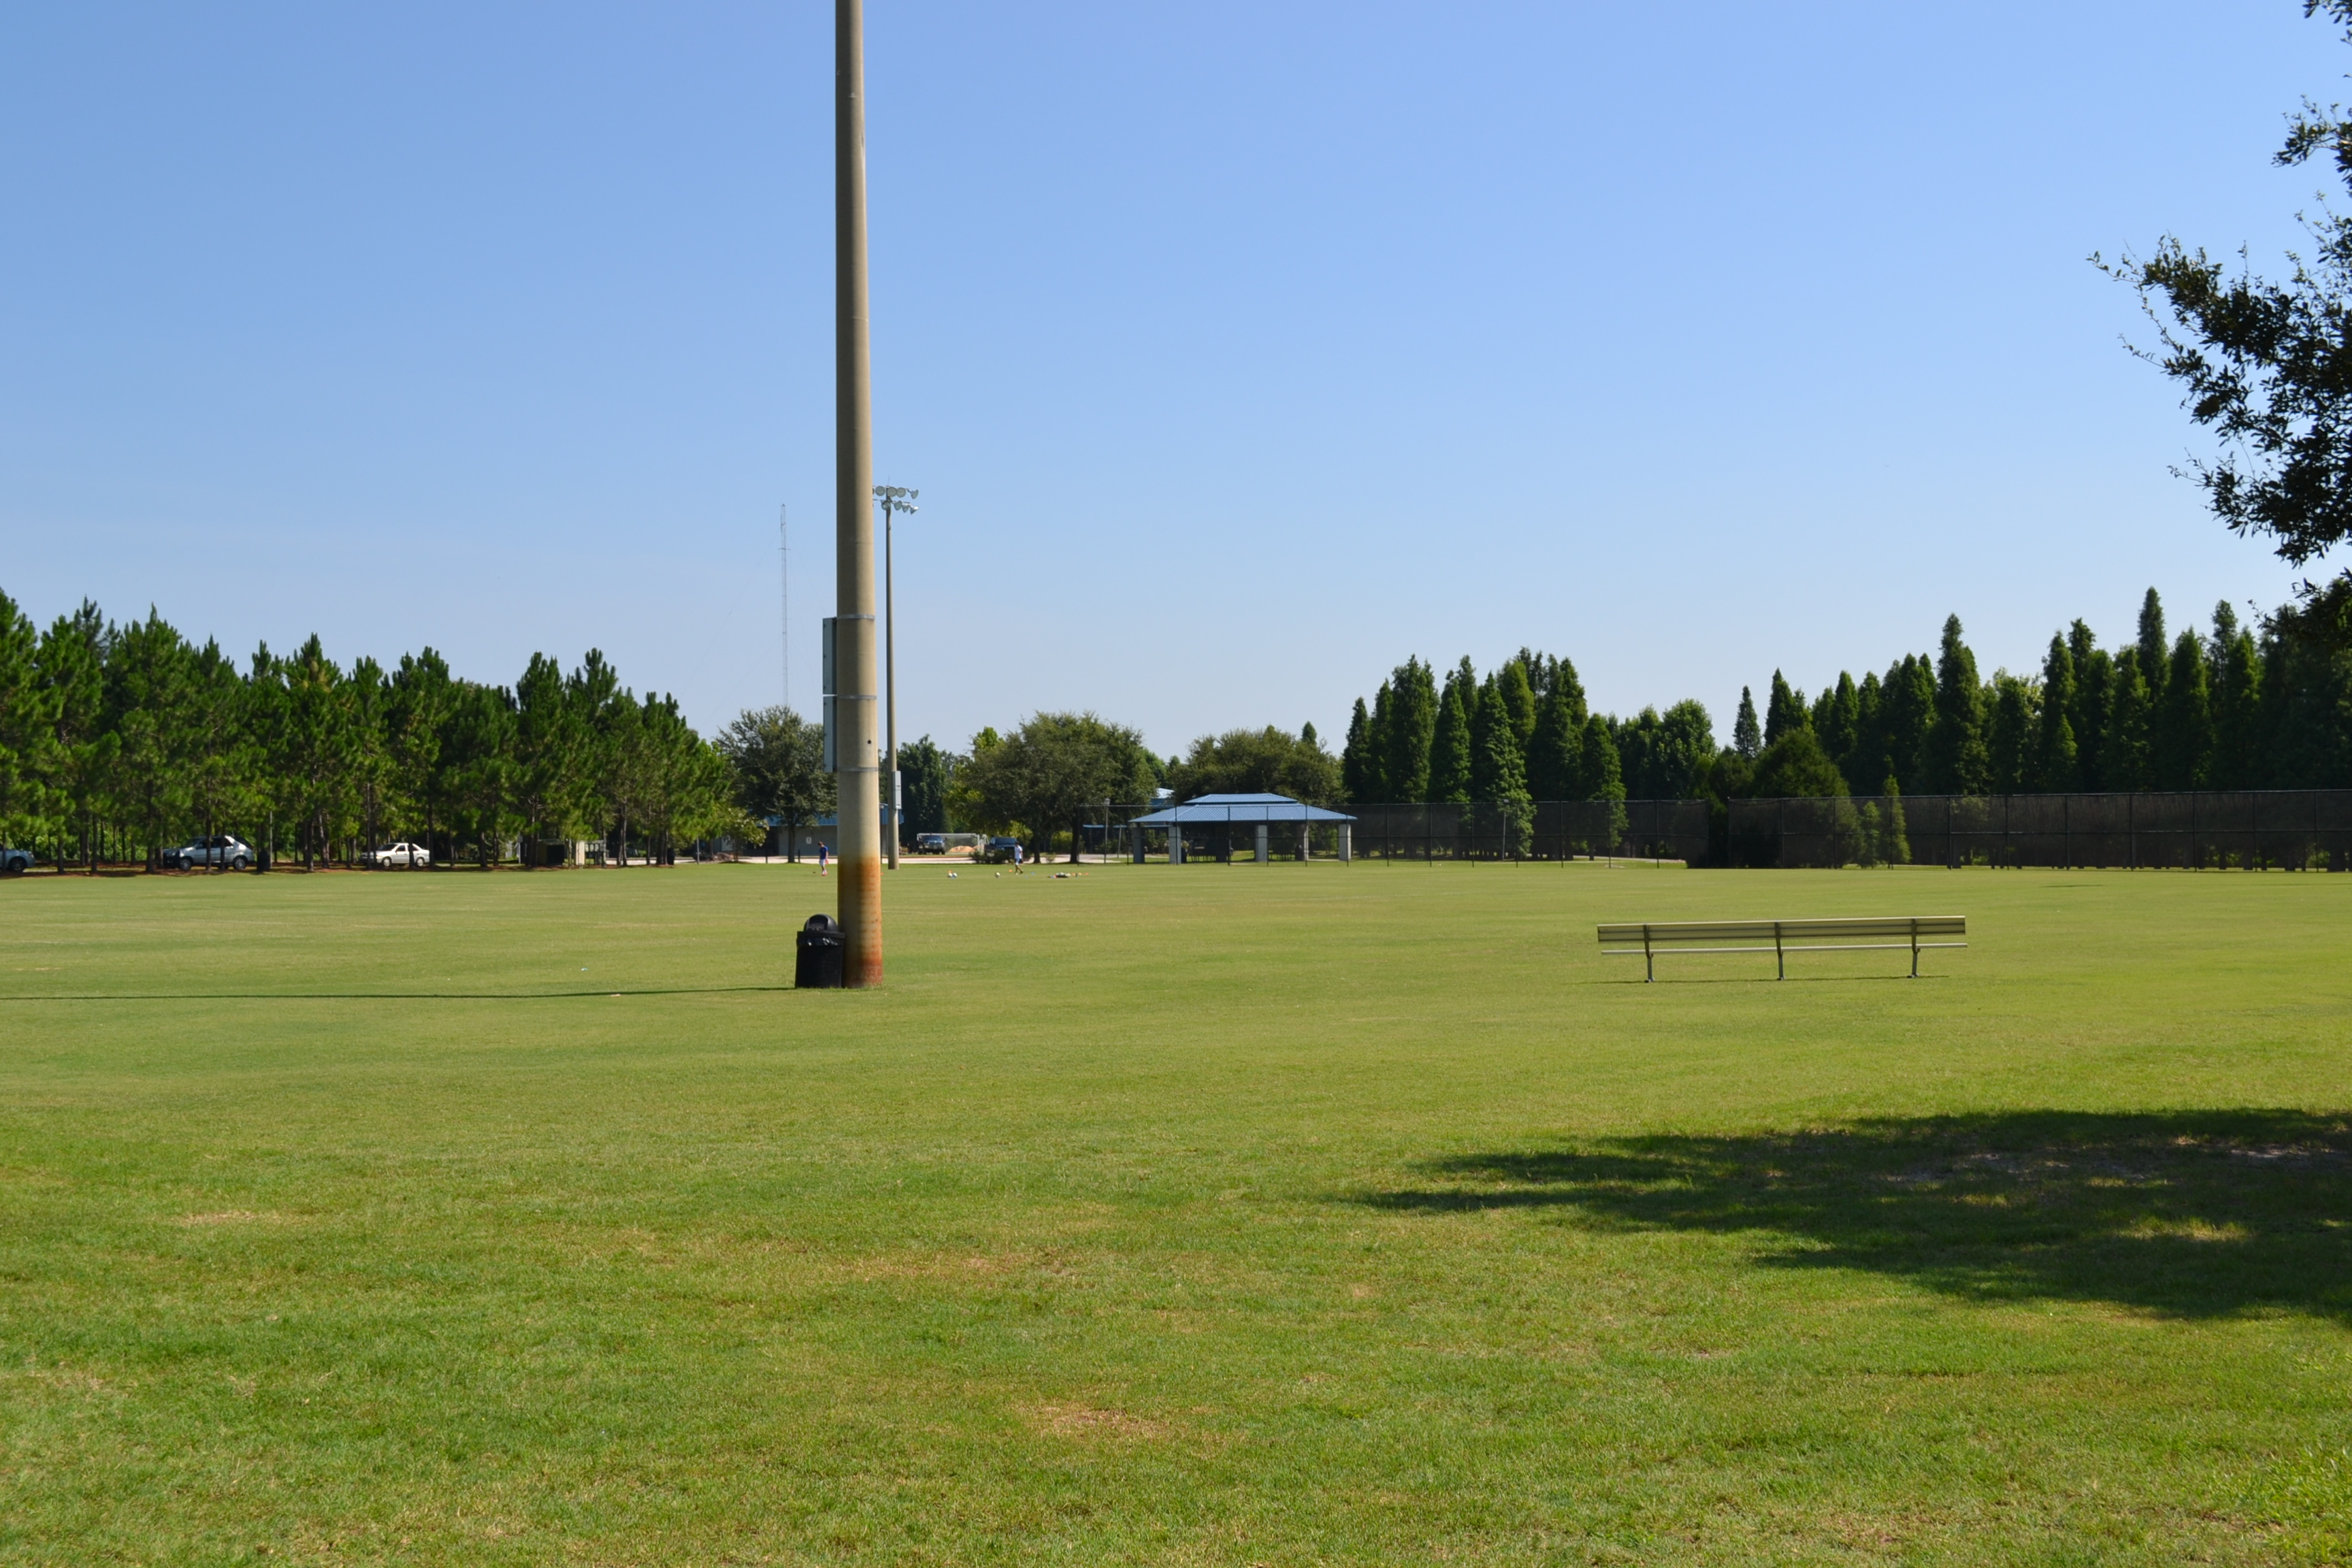 A view of a multipurpose field at Lake Bonny Park